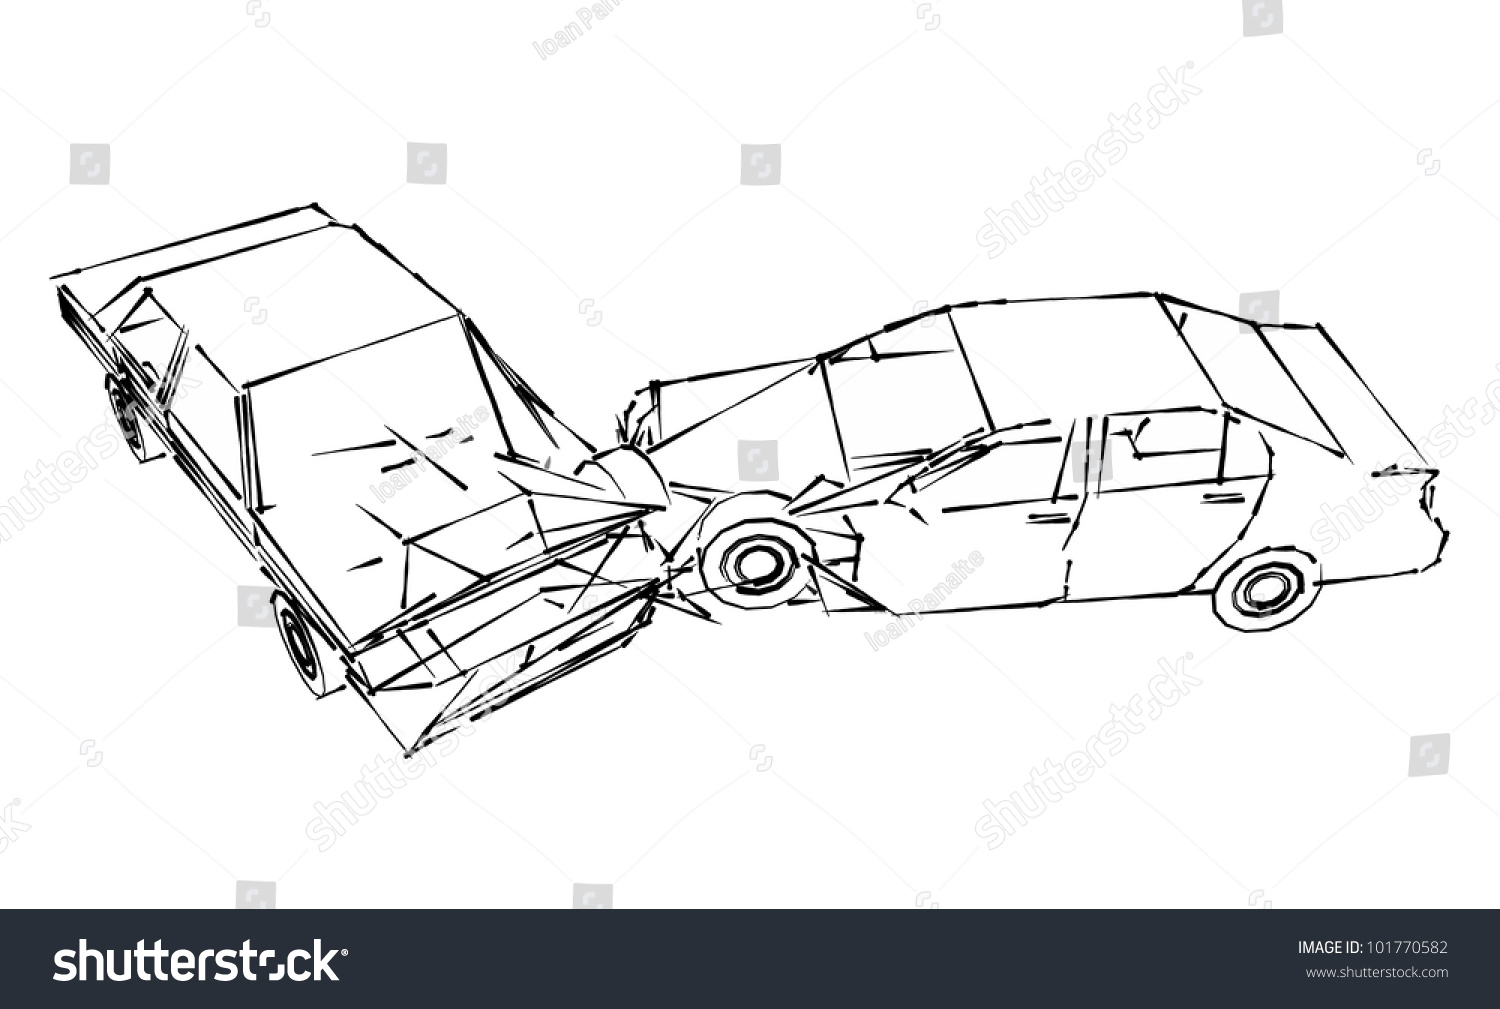 Car Crash Accident Sketch Stock Illustration 101770582 - Shutterstock